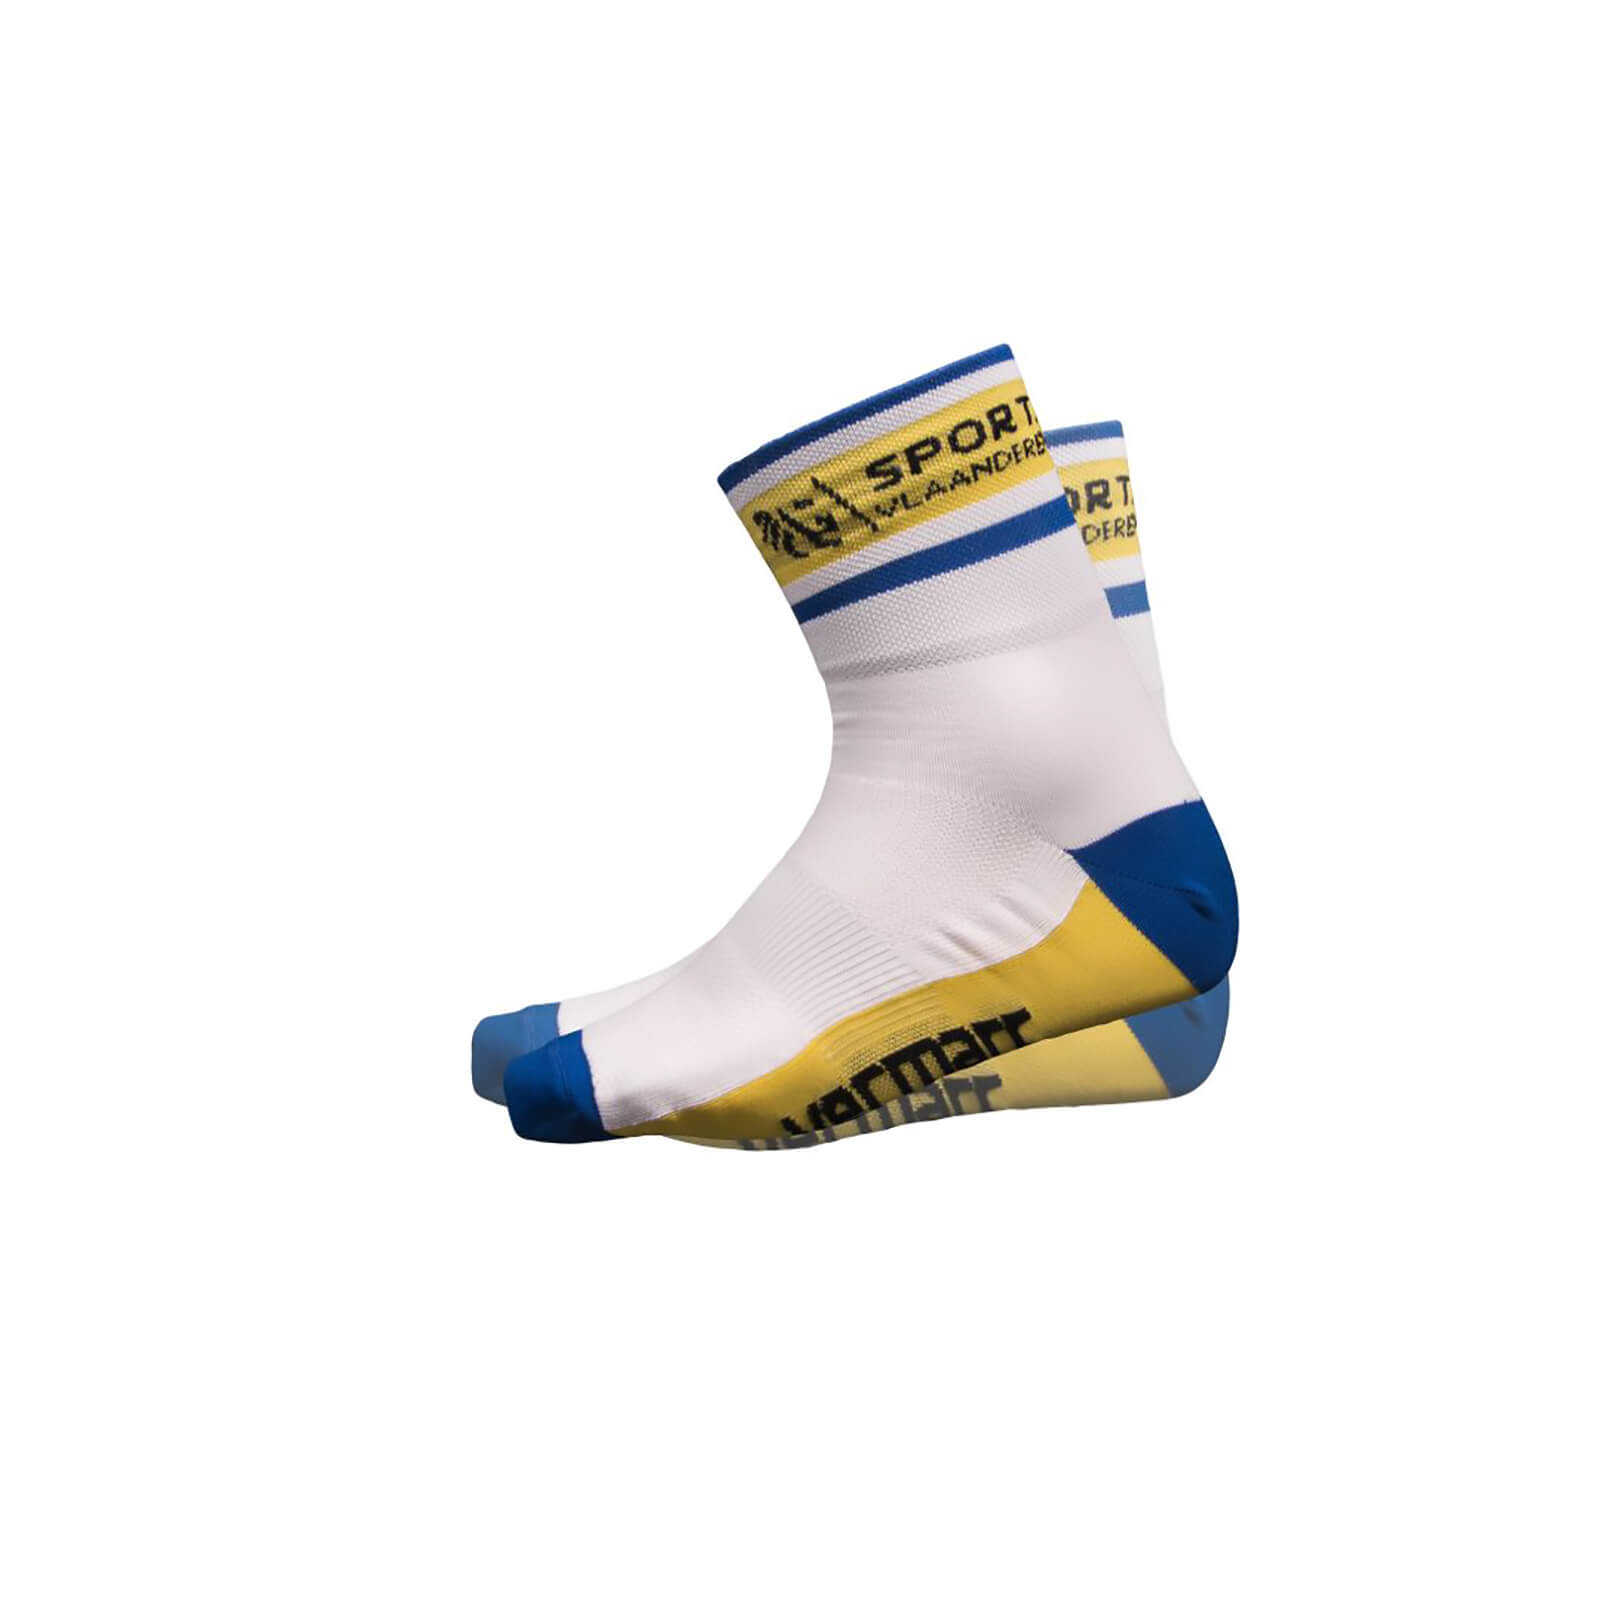 Sport Vlaanderen Socks - White/Blue/Yellow